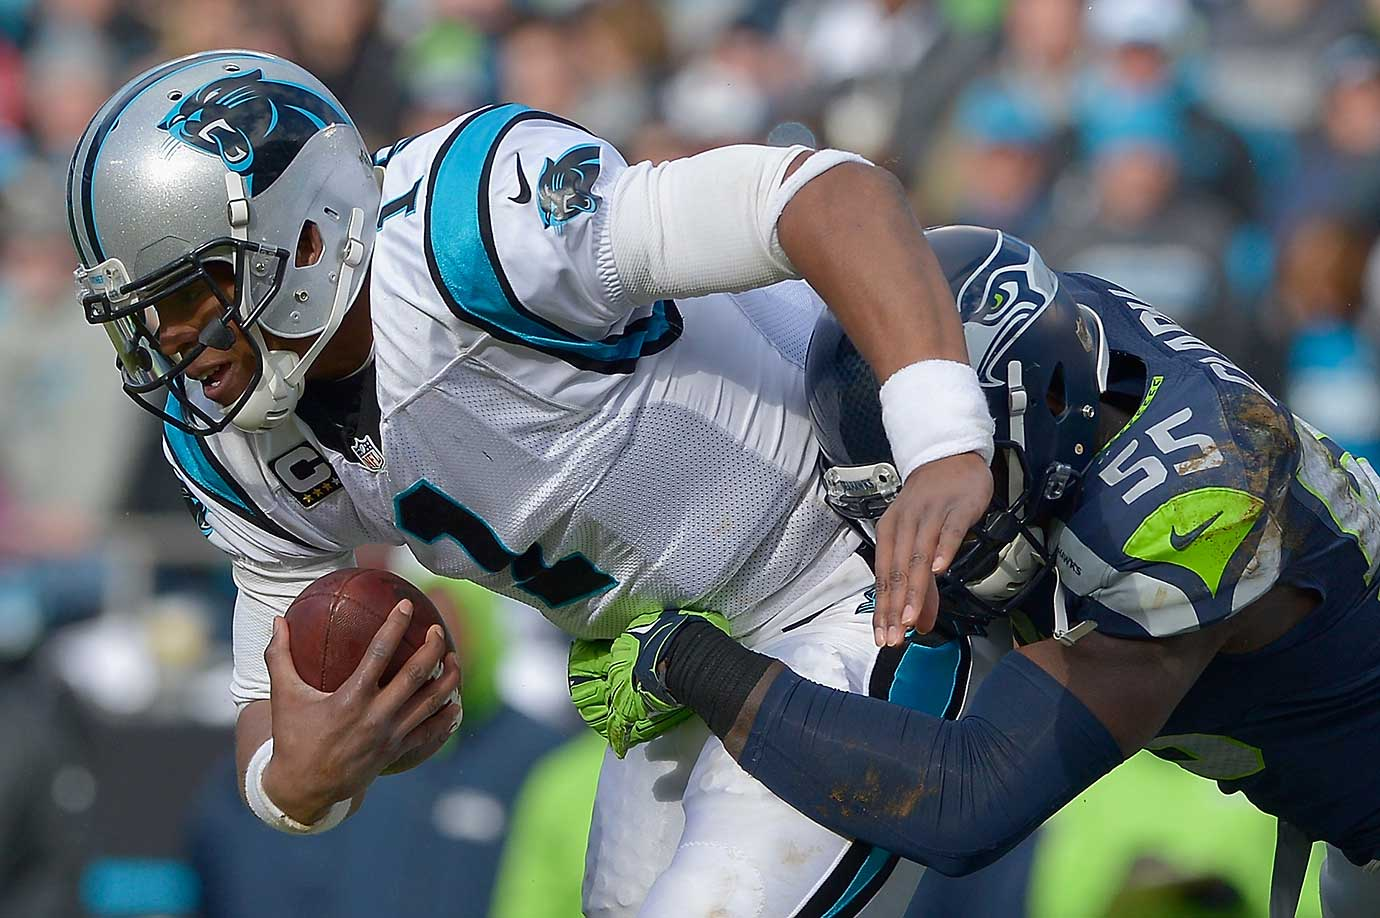 Frank Clark of the Seattle Seahawks sacks Cam Newton during their NFC divisional playoff matchup in Charlotte. The Panthers led 31-0 at halftime and moved within a win of reaching the Super Bowl.